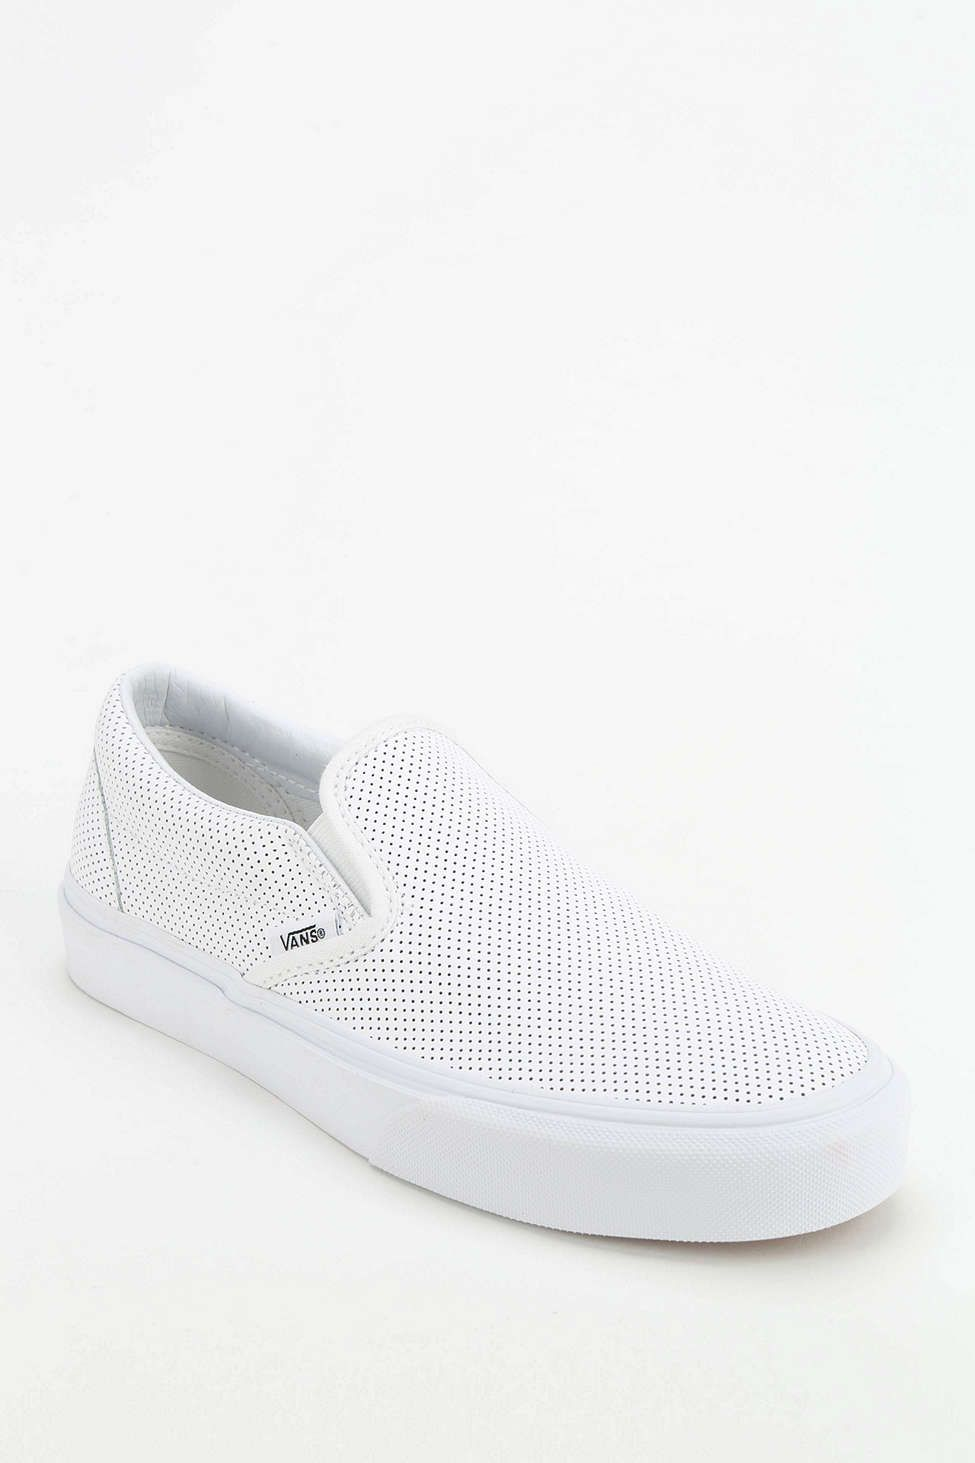 a1493c456f Vans Perforated Leather Women s Slip-On Sneaker Sz 8 ...